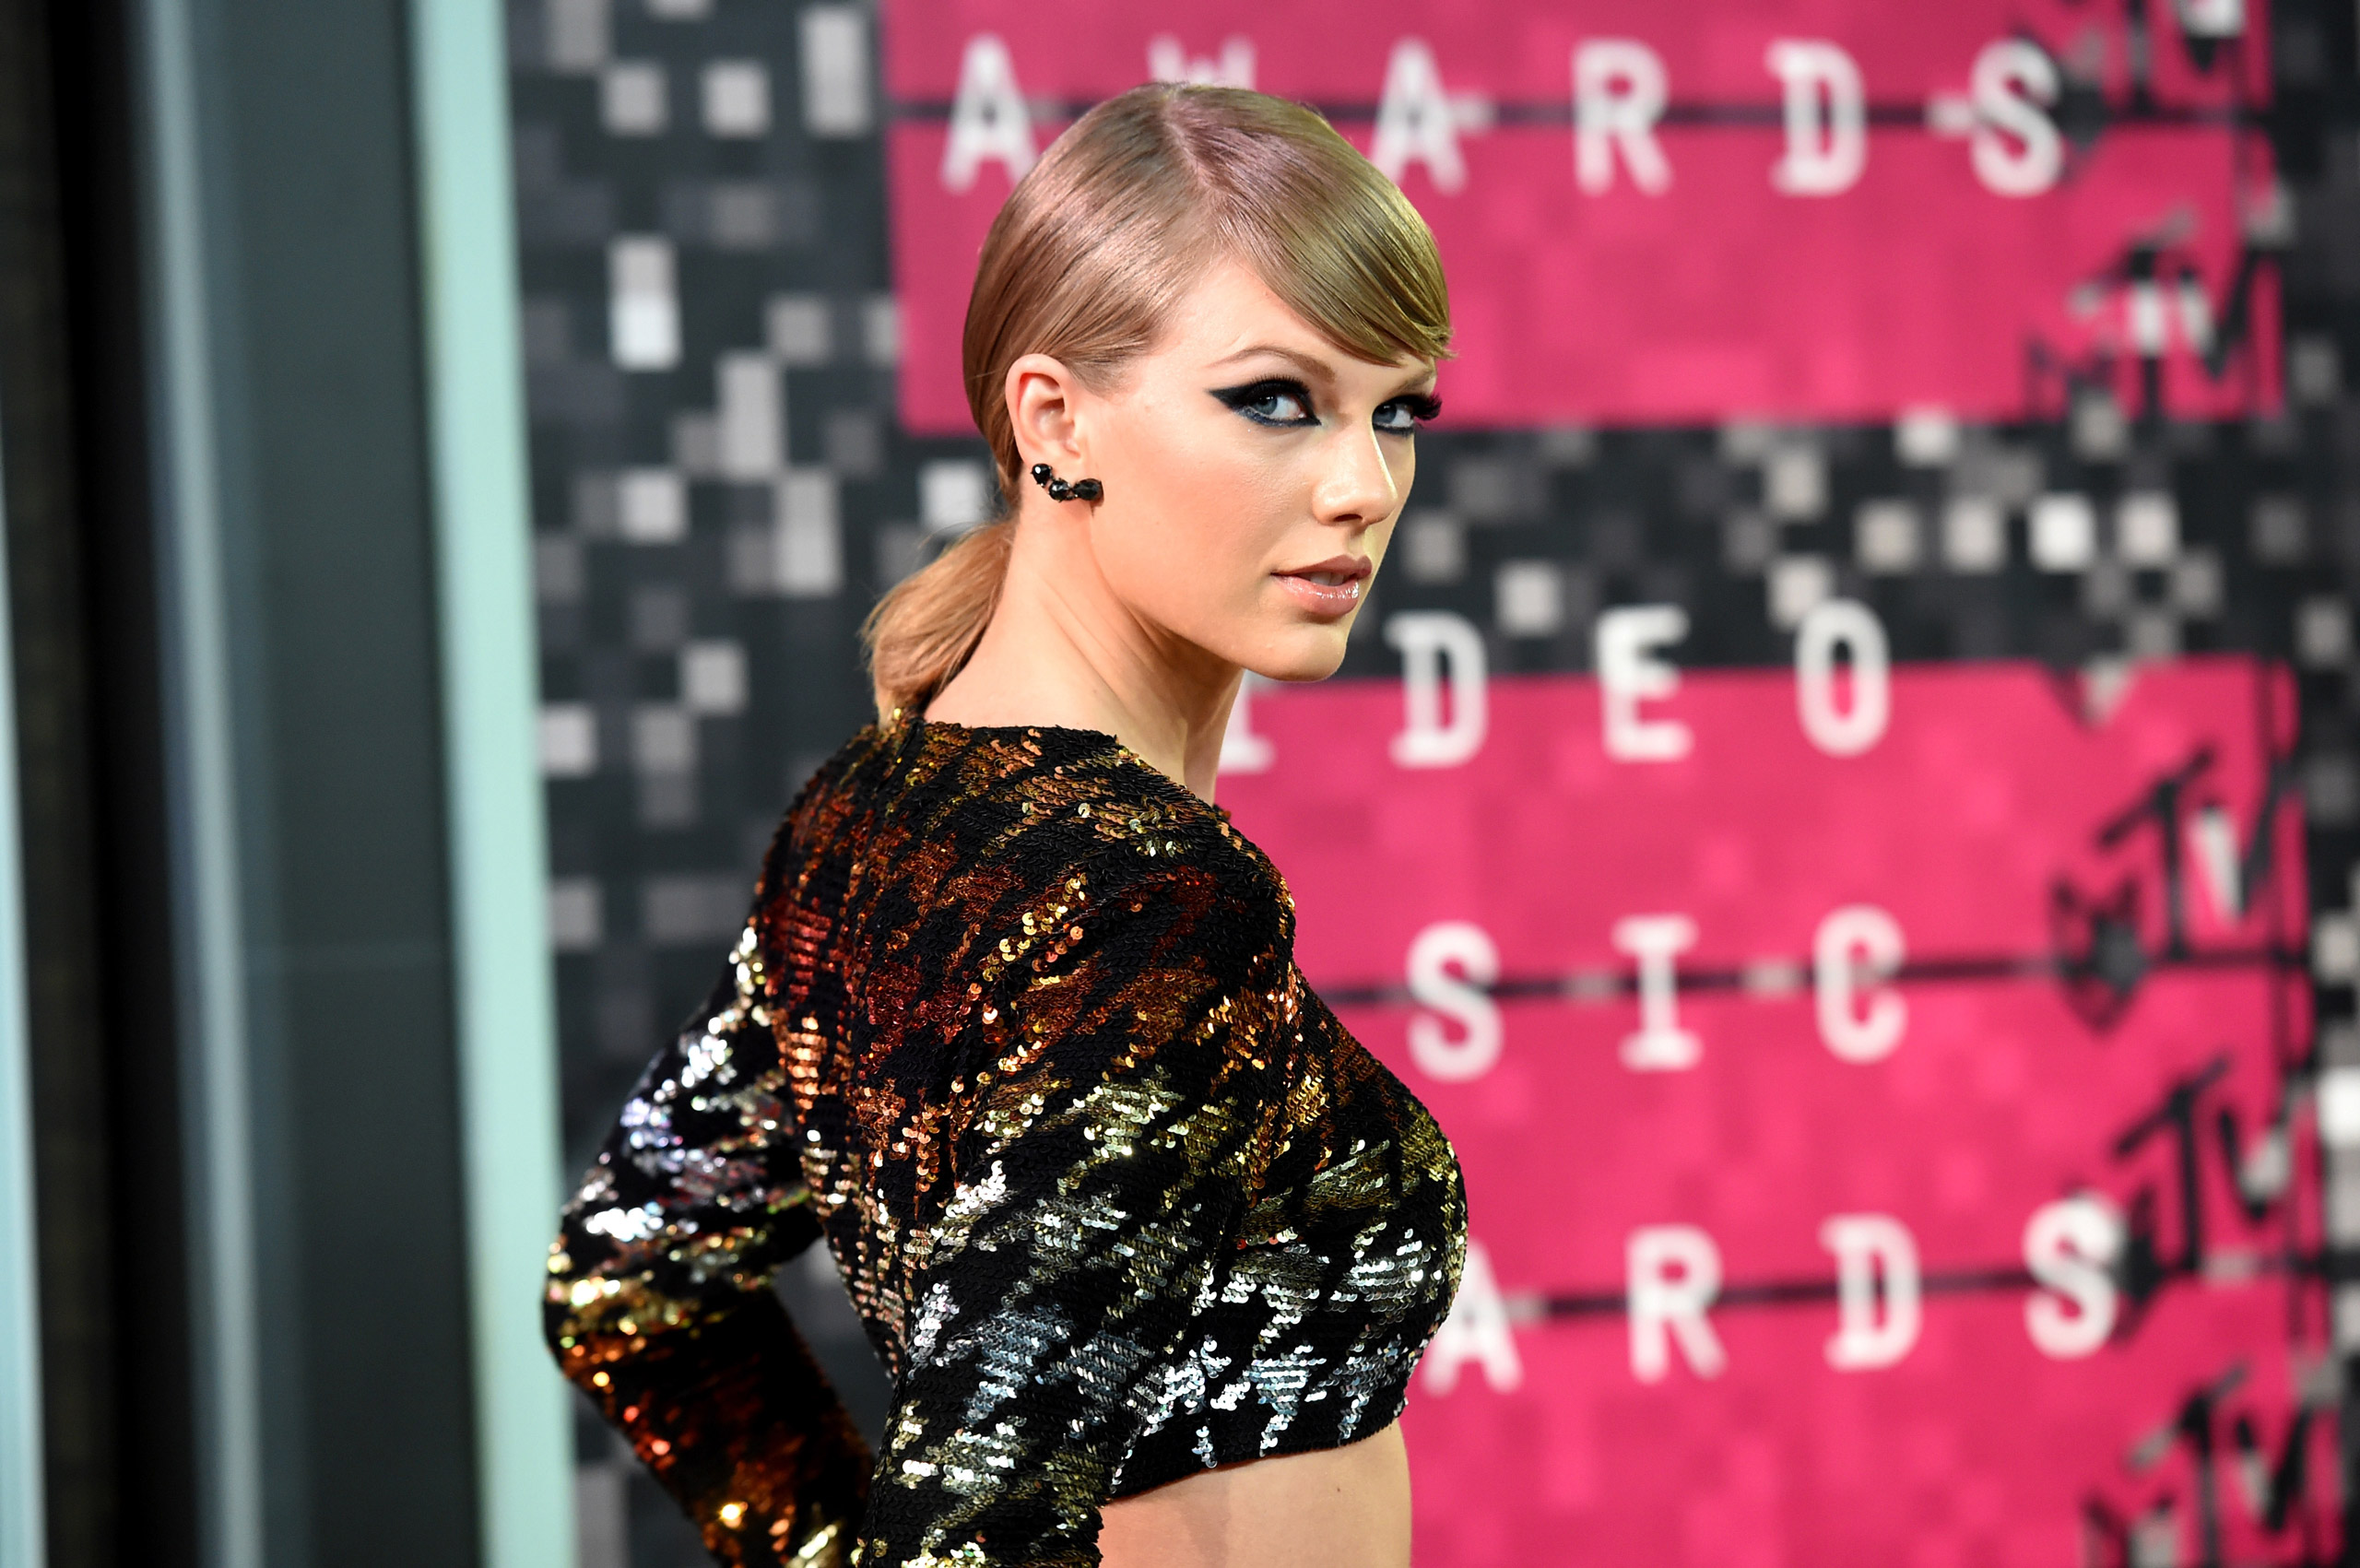 Taylor Swift attends the 2015 MTV Video Music Awards at Microsoft Theater in Los Angeles on Aug. 30, 2015.